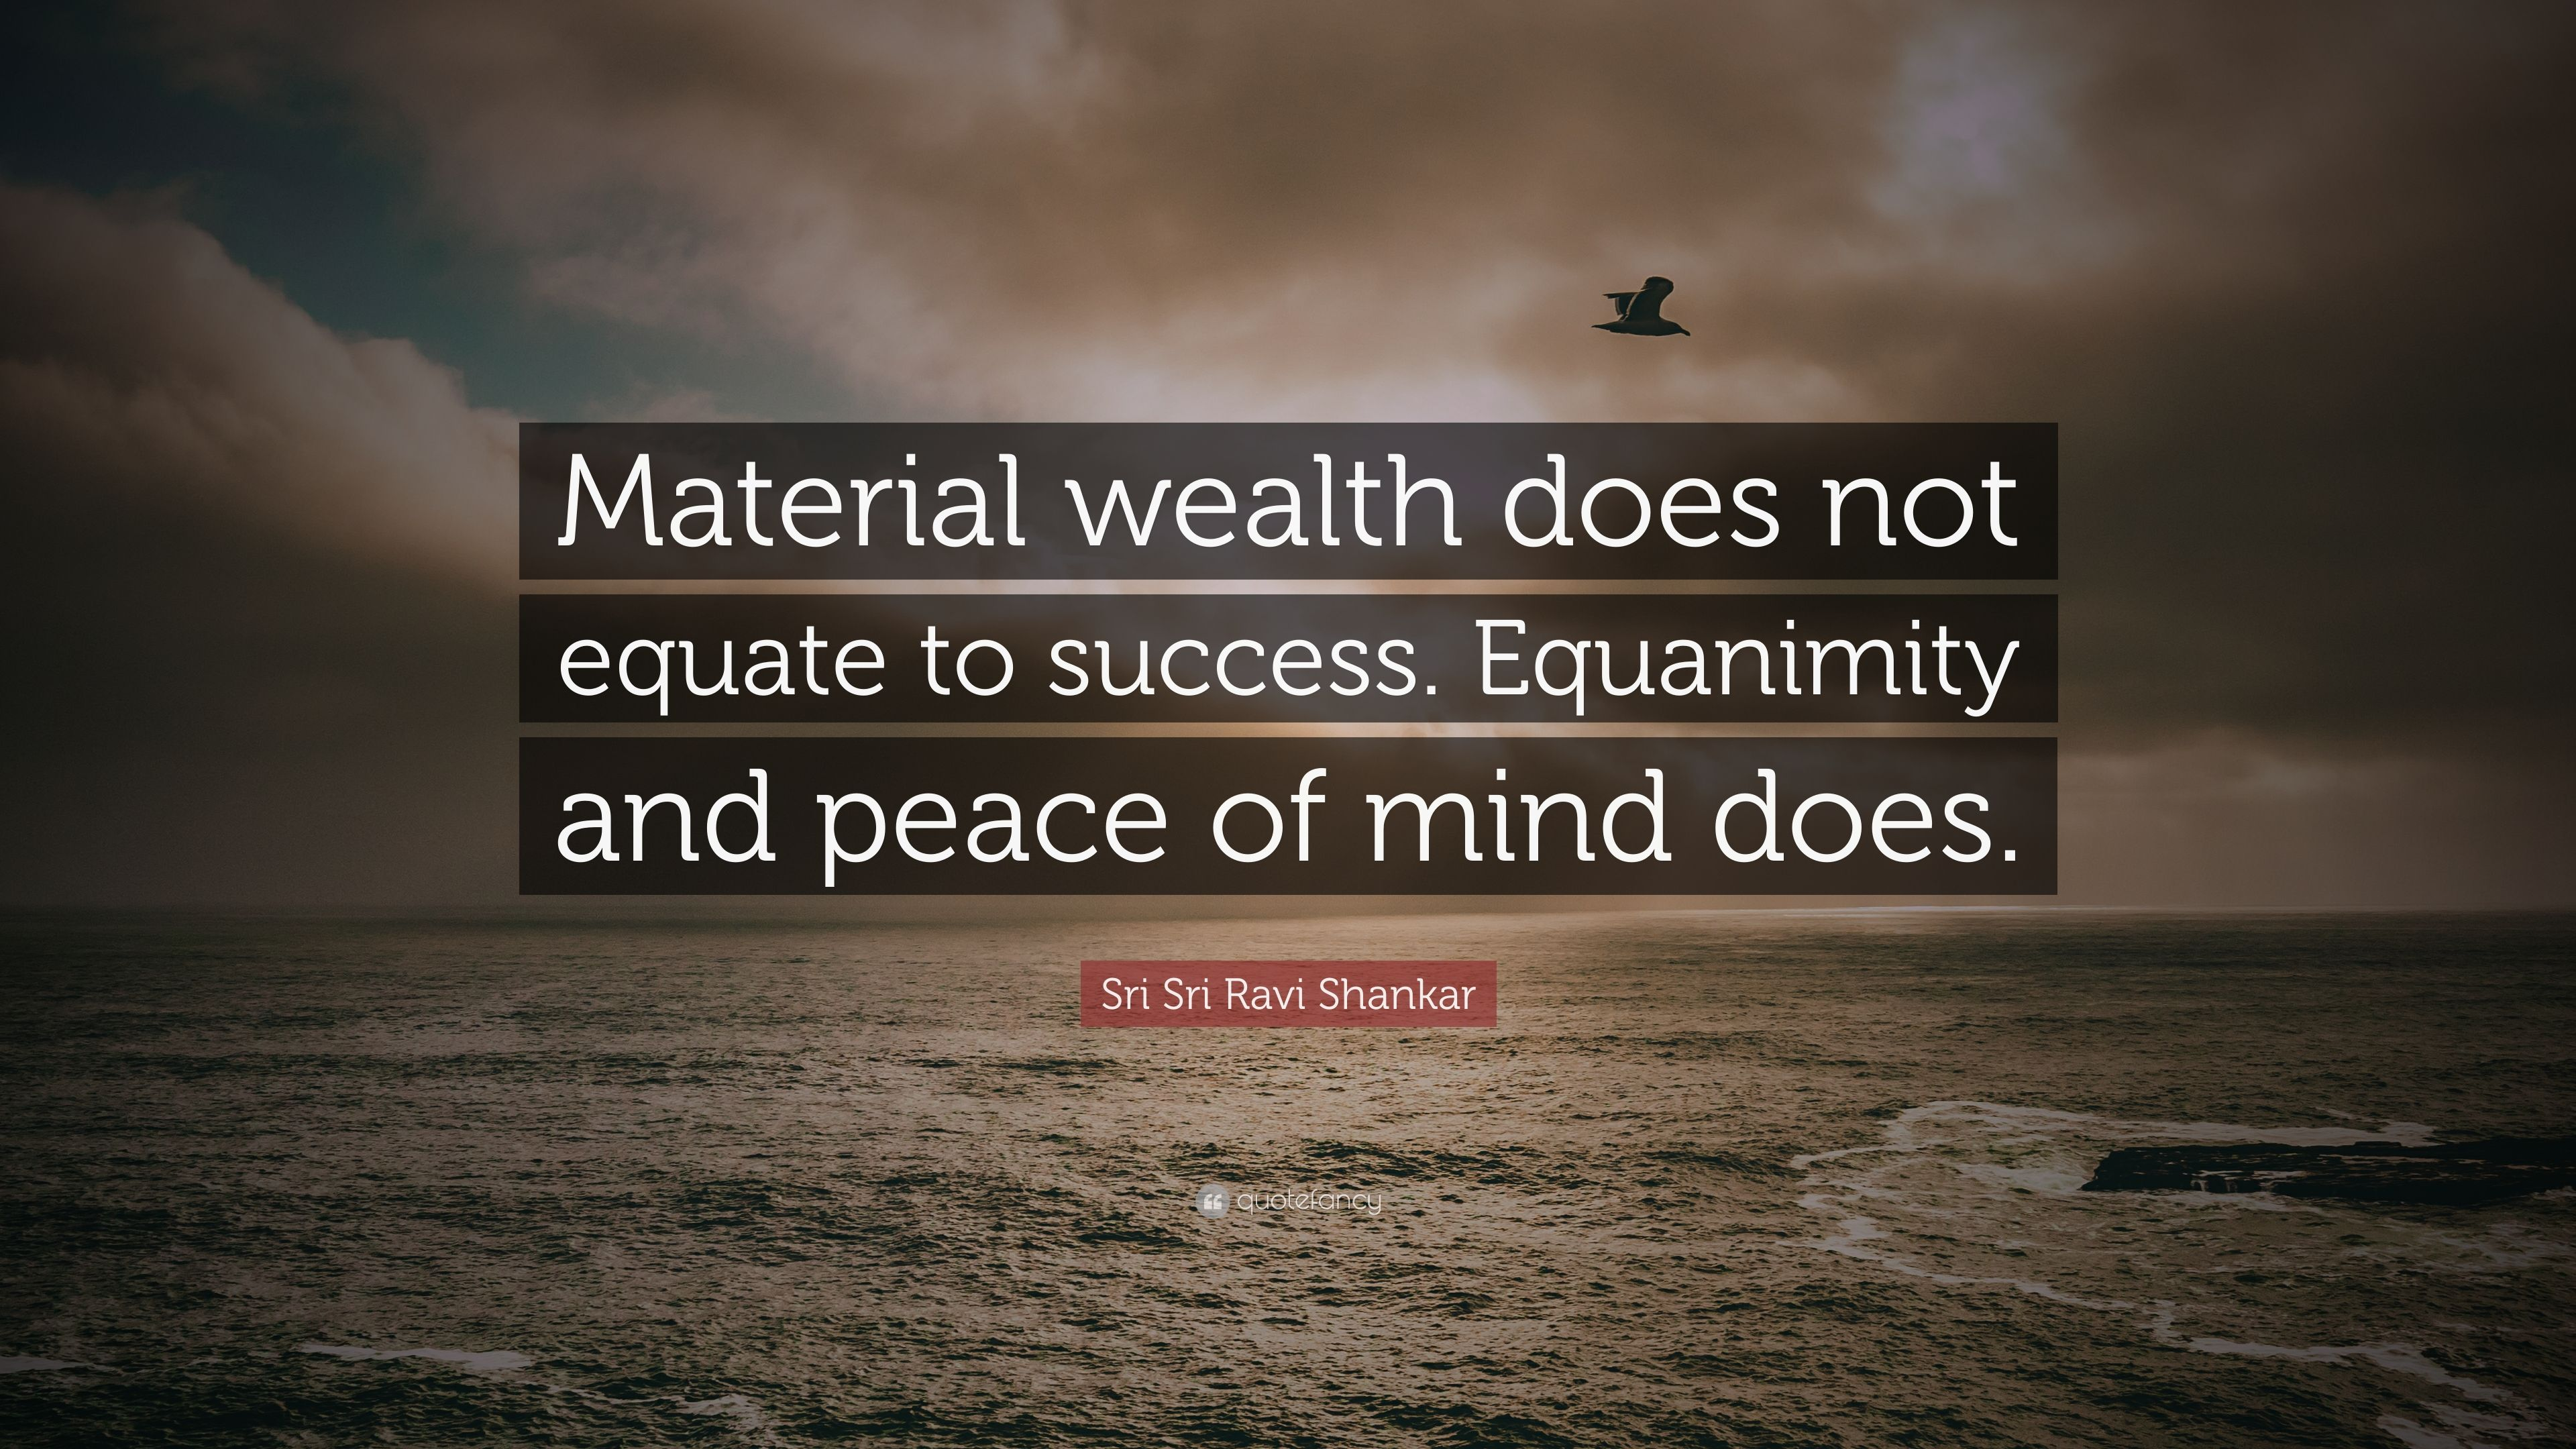 Sri Sri Ravi Shankar Quote Material Wealth Does Not Equate To